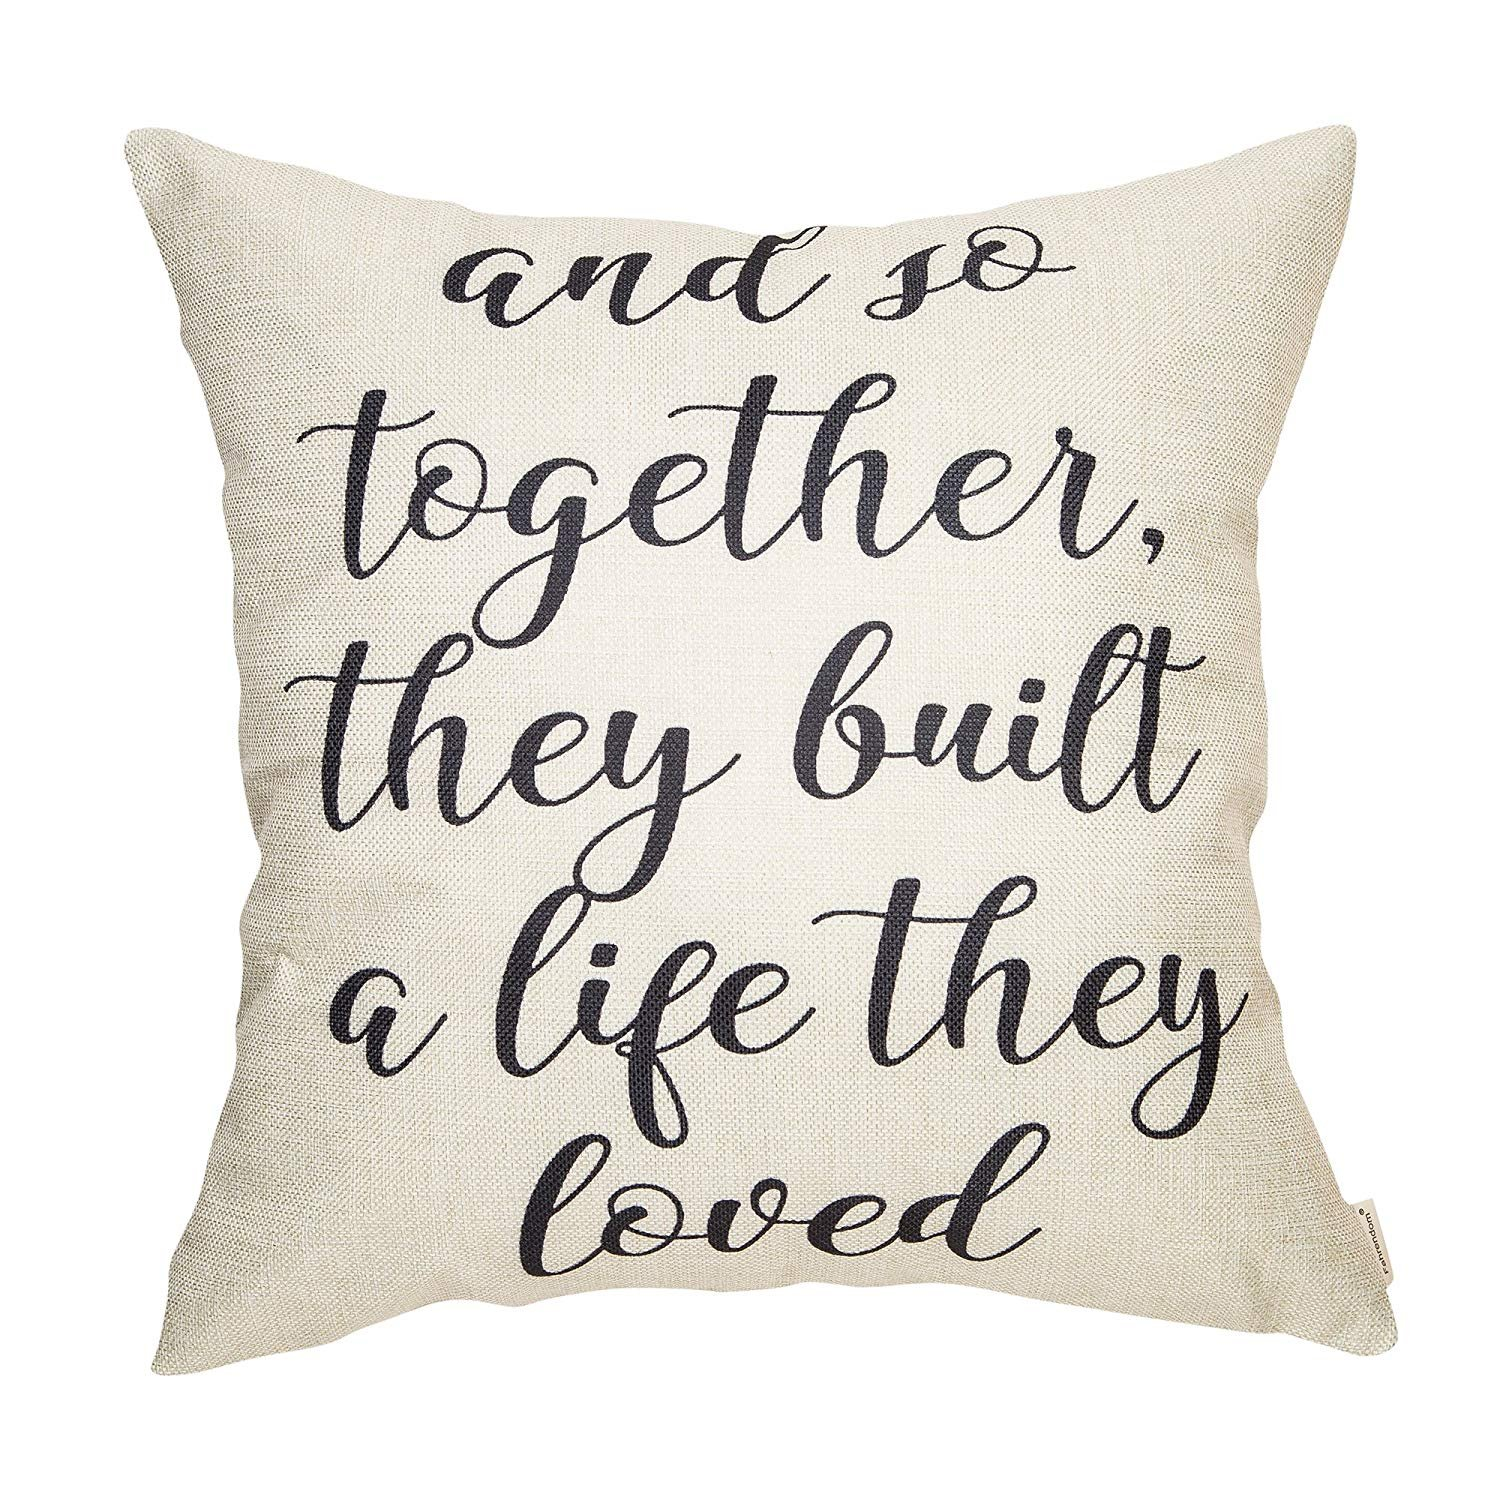 So Together They Built a Life They Loved Farmhouse Style Sign Cotton Linen Home Decorative Throw Pillow Case Cushion Cover Words Sofa Couch, 18 x 18 in NDJHEH